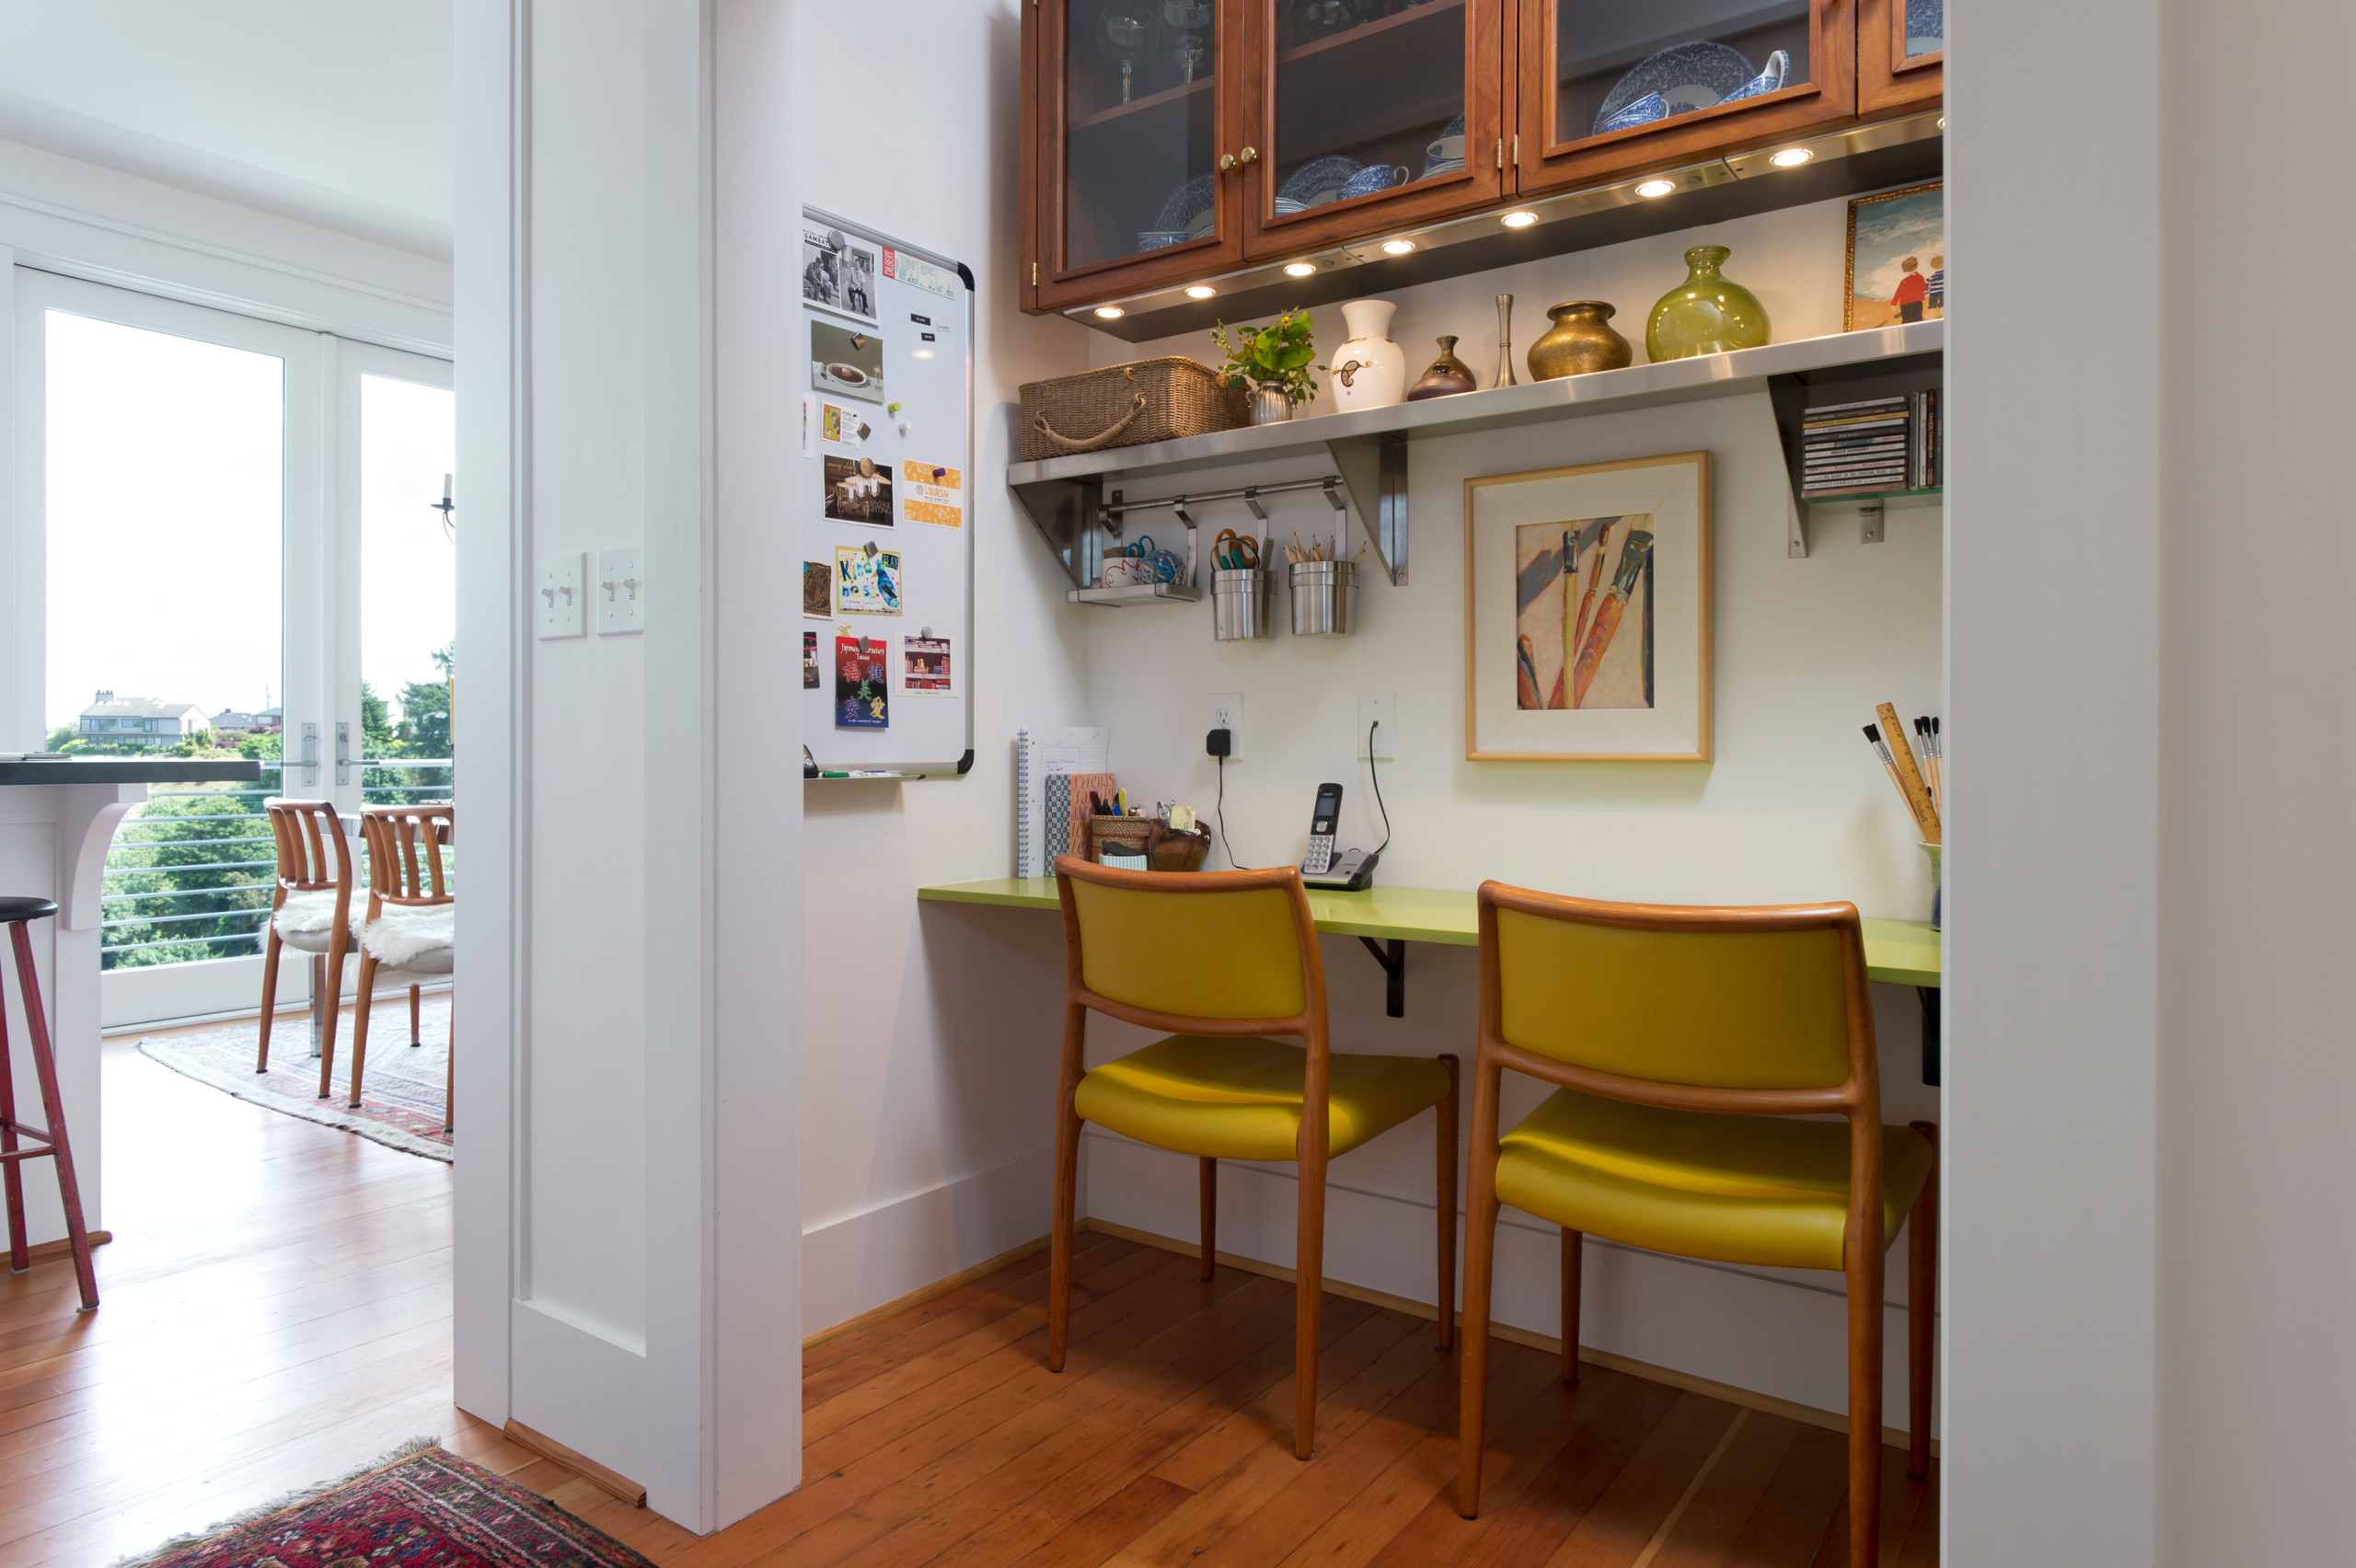 75 Beautiful Small Home Office Pictures Ideas January 2021 Houzz